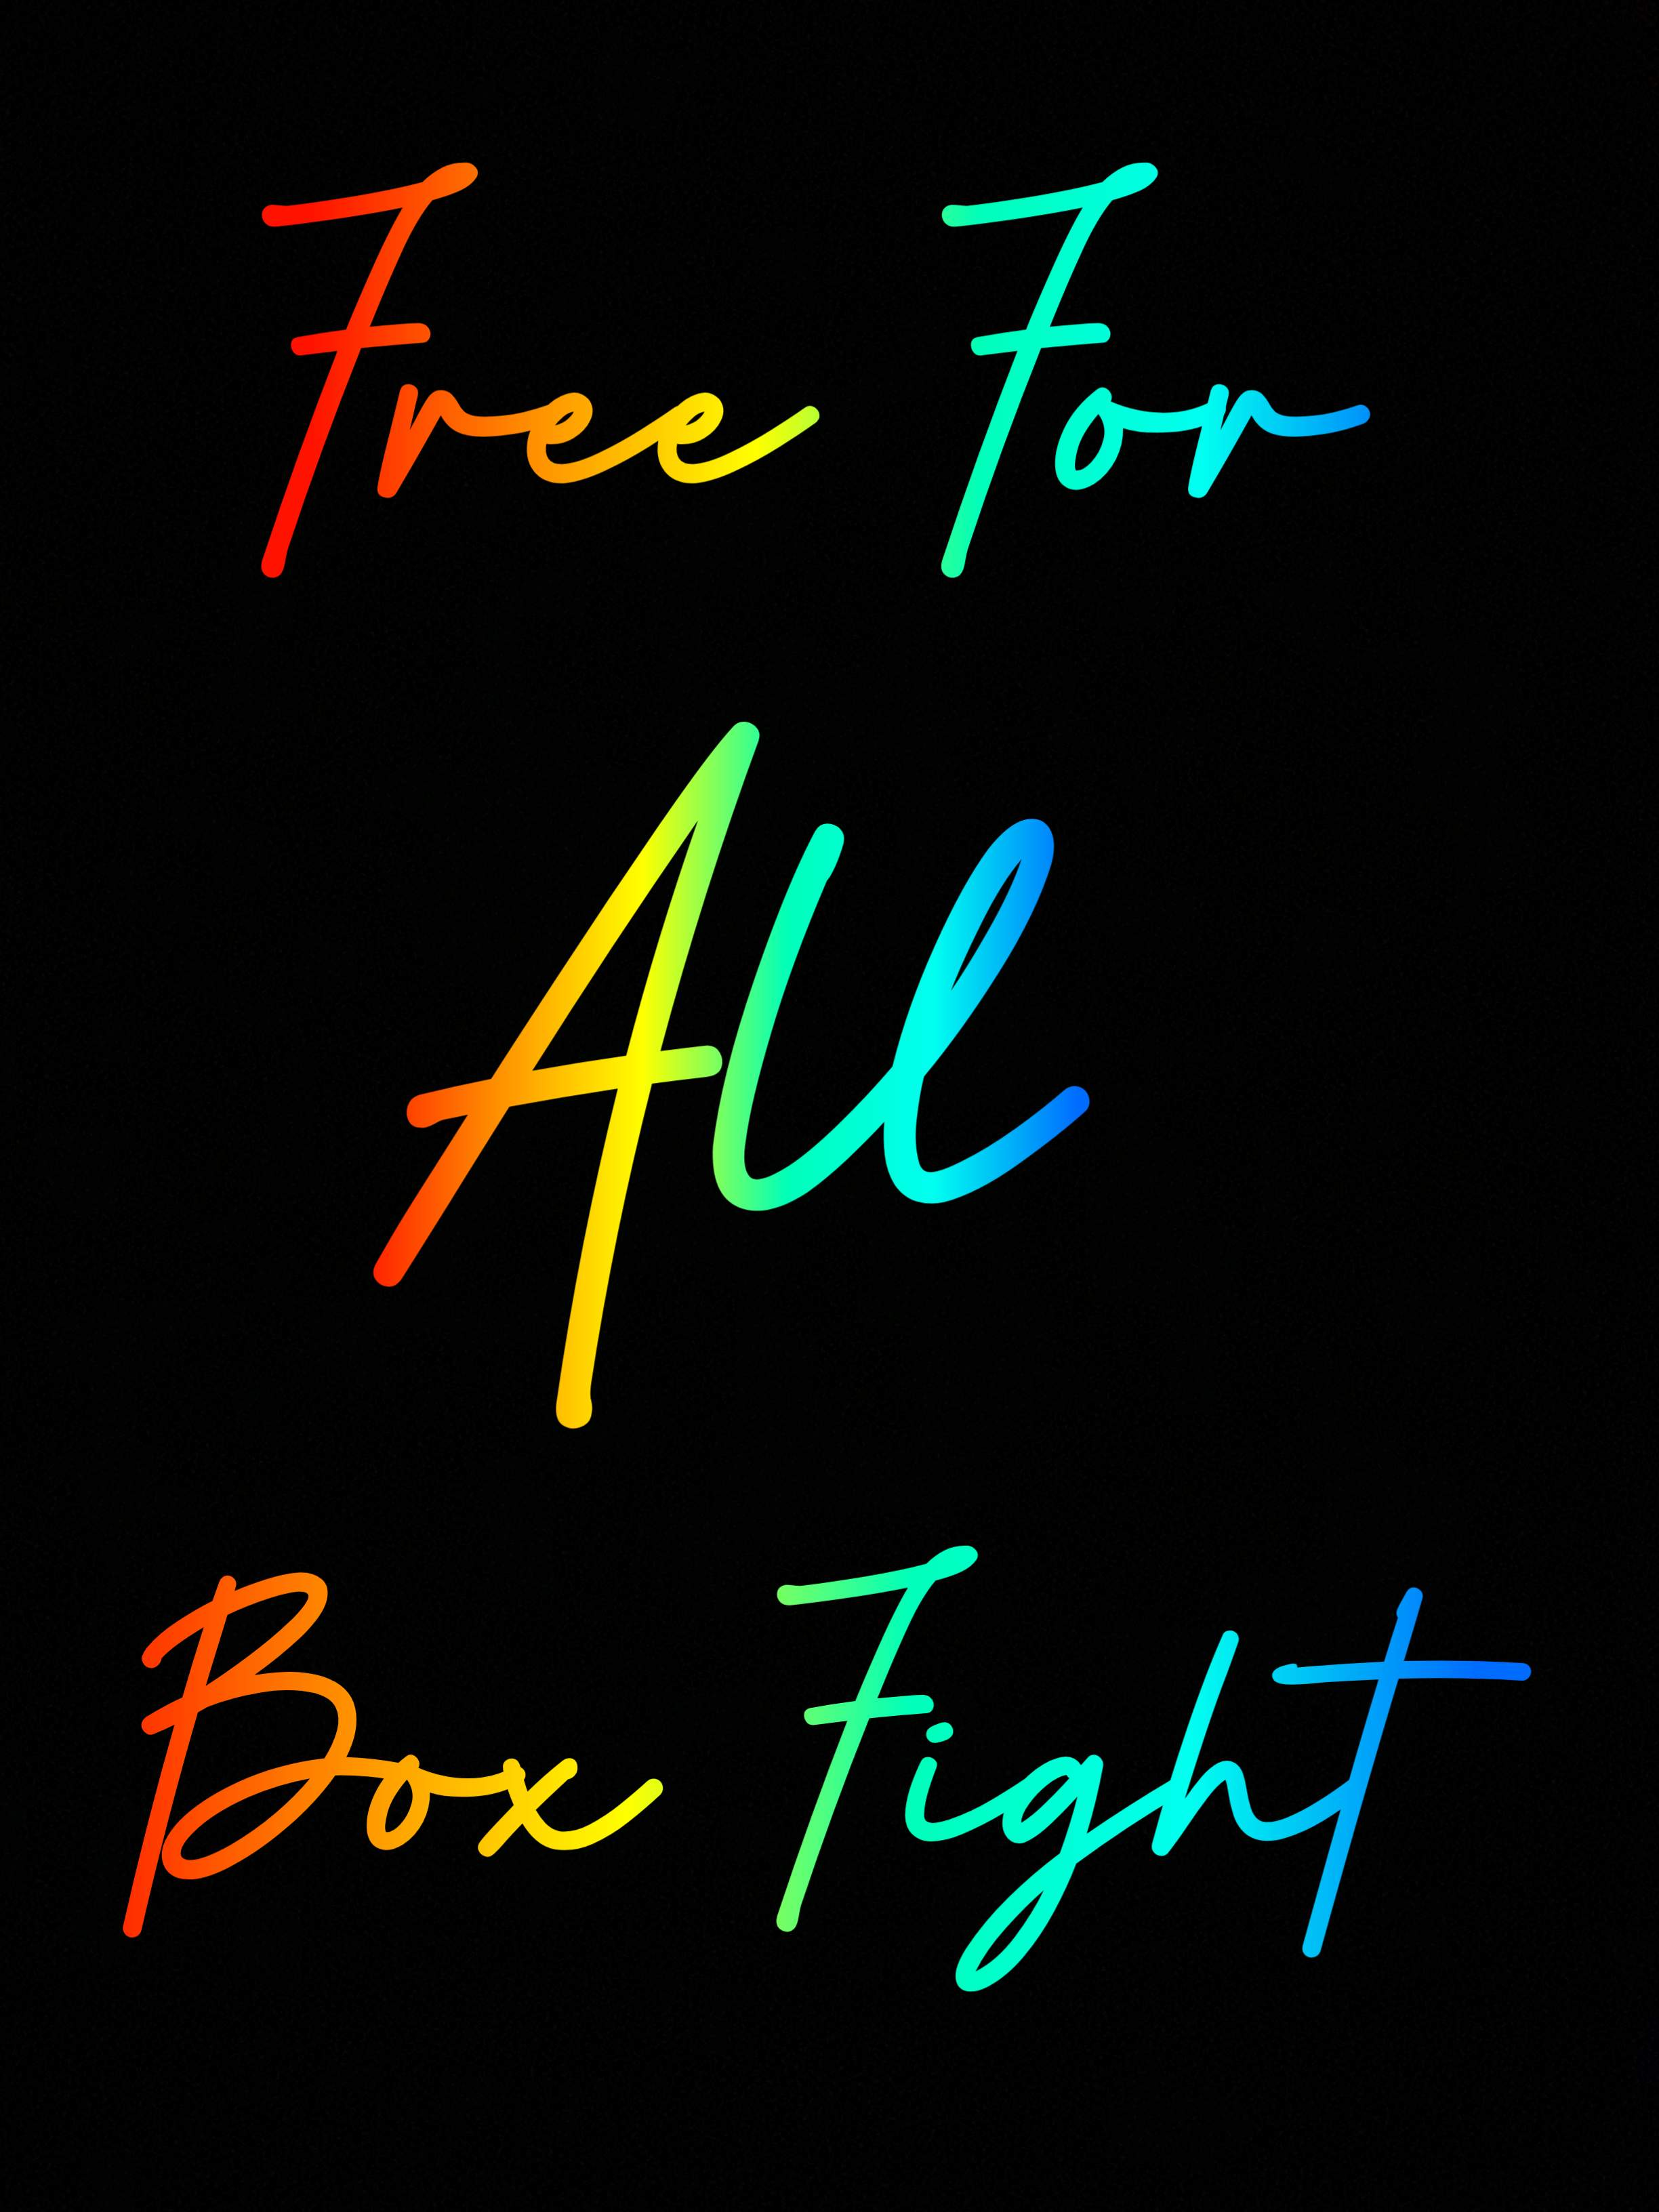 FREE FOR ALL BOX FIGHT